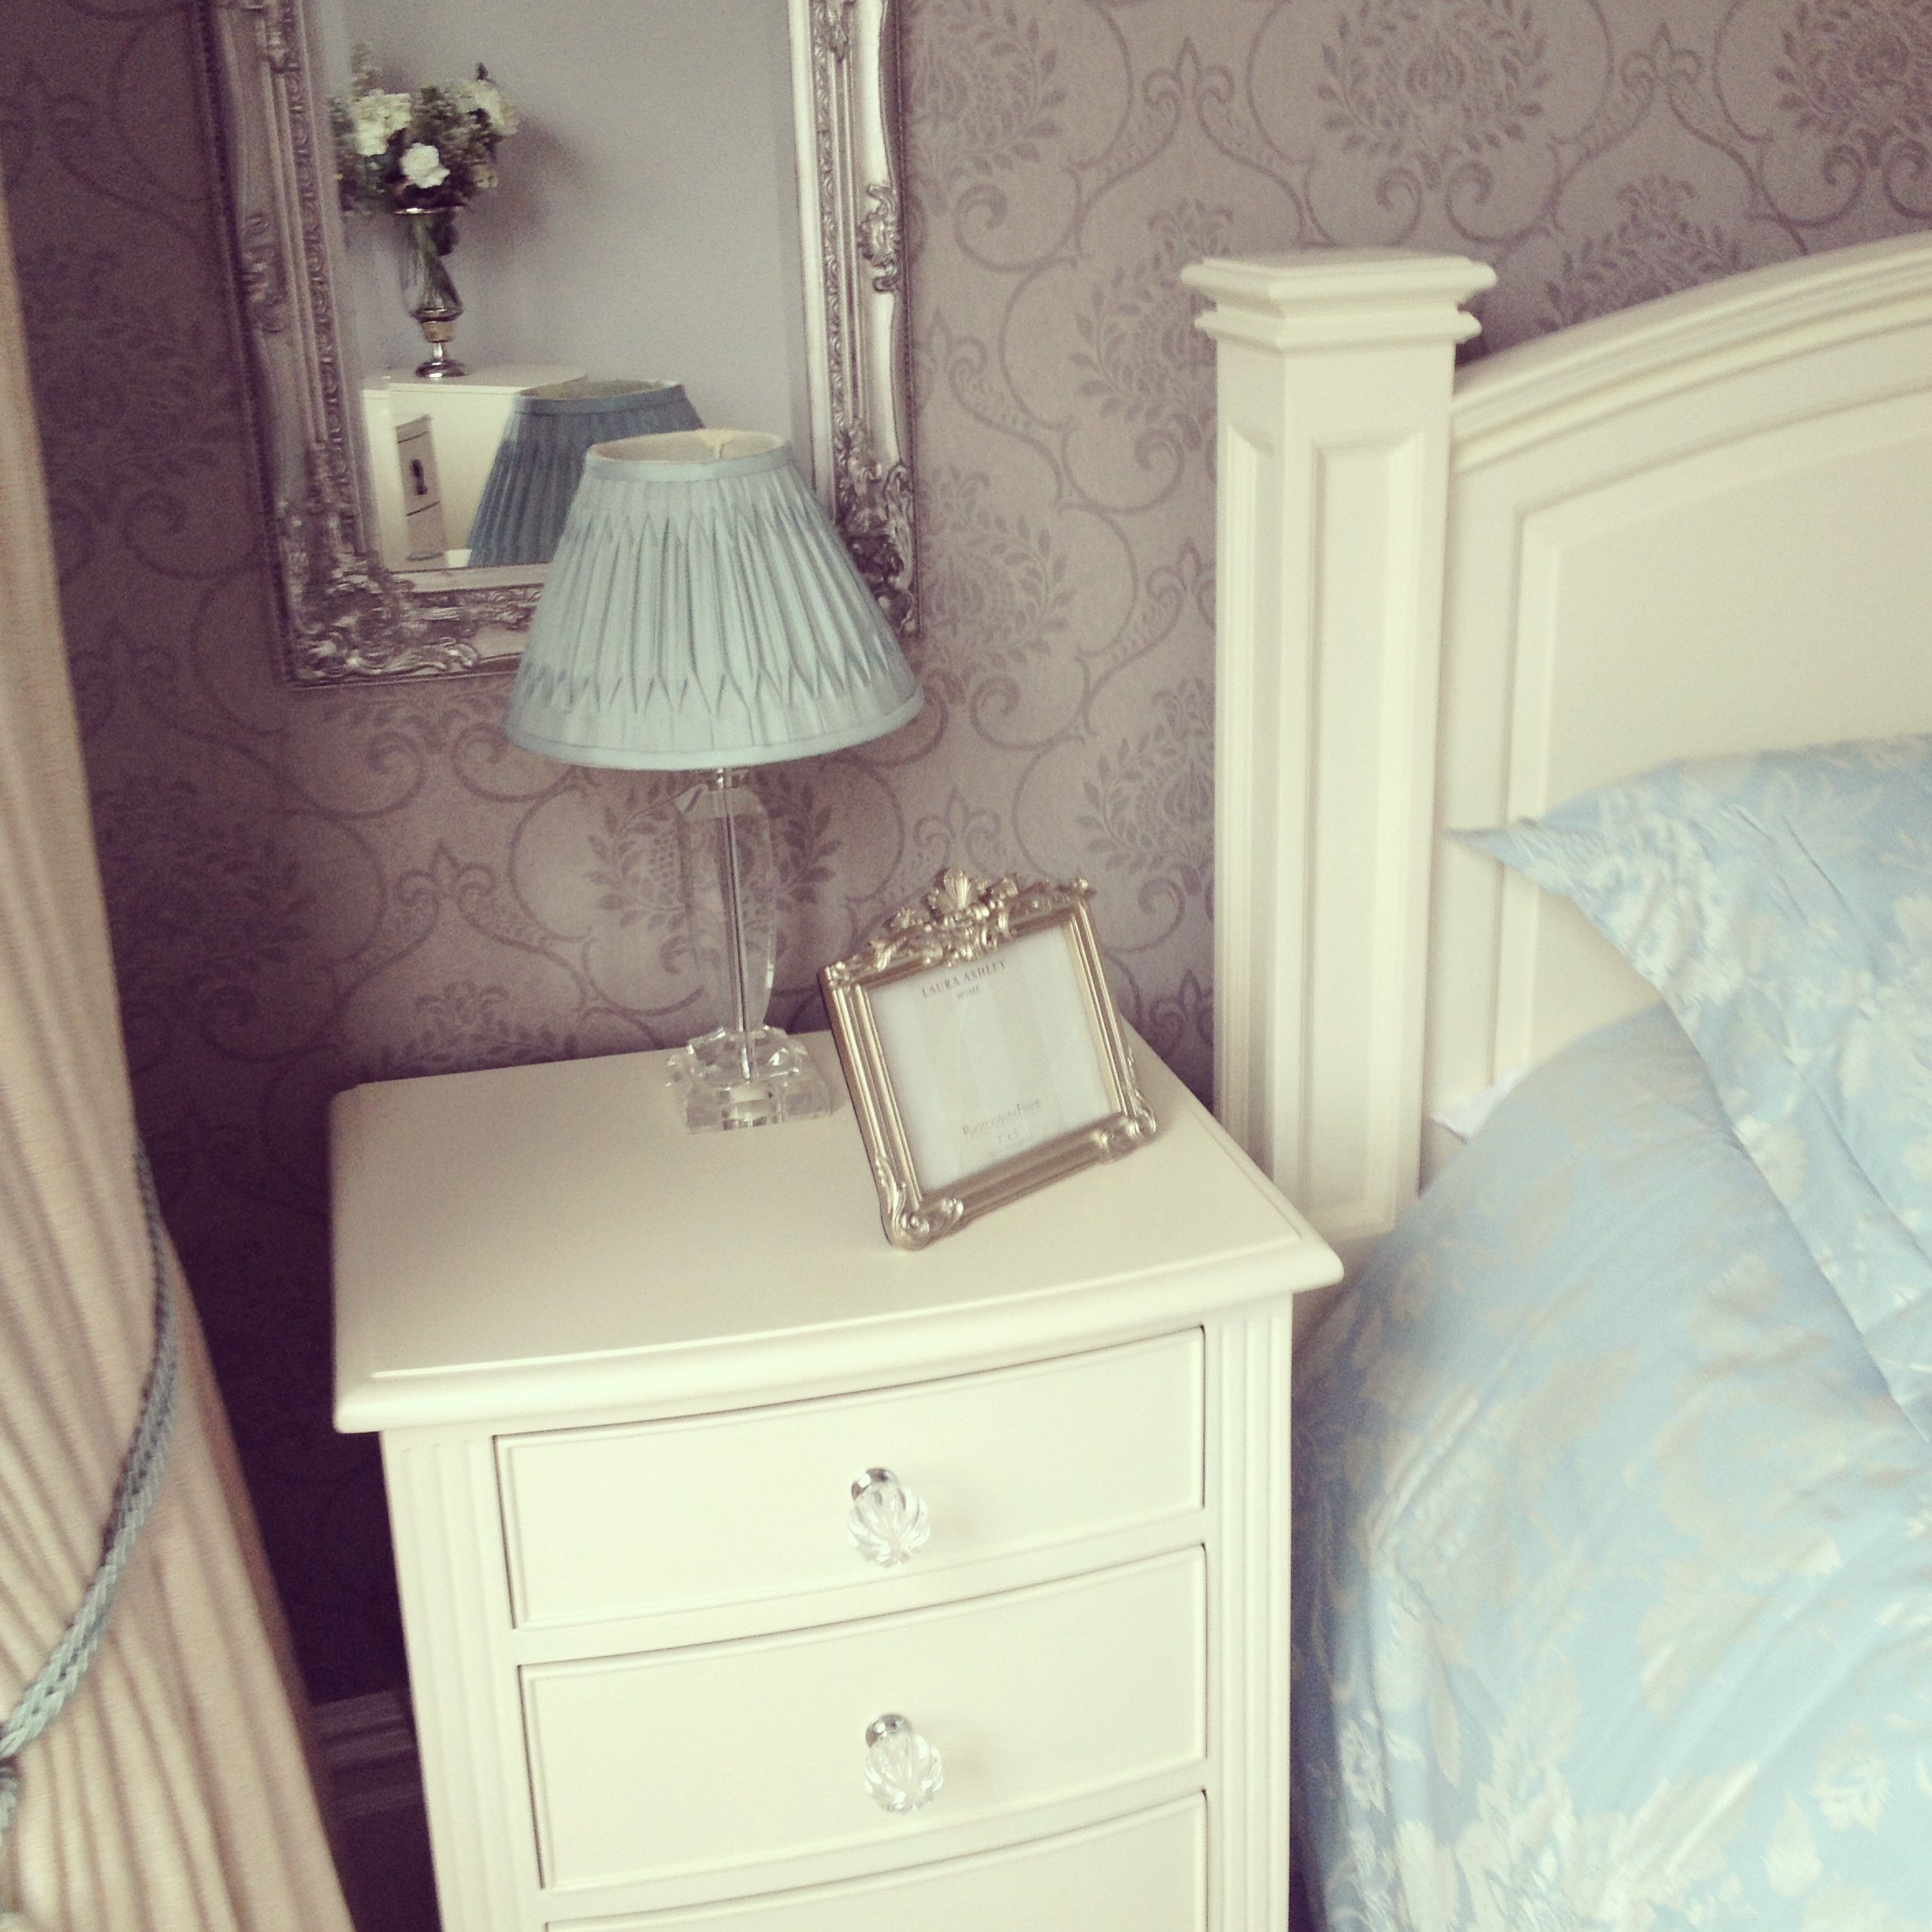 Farrow and ball white tie - Painted In Farrow And Ball White Tie We Specialise